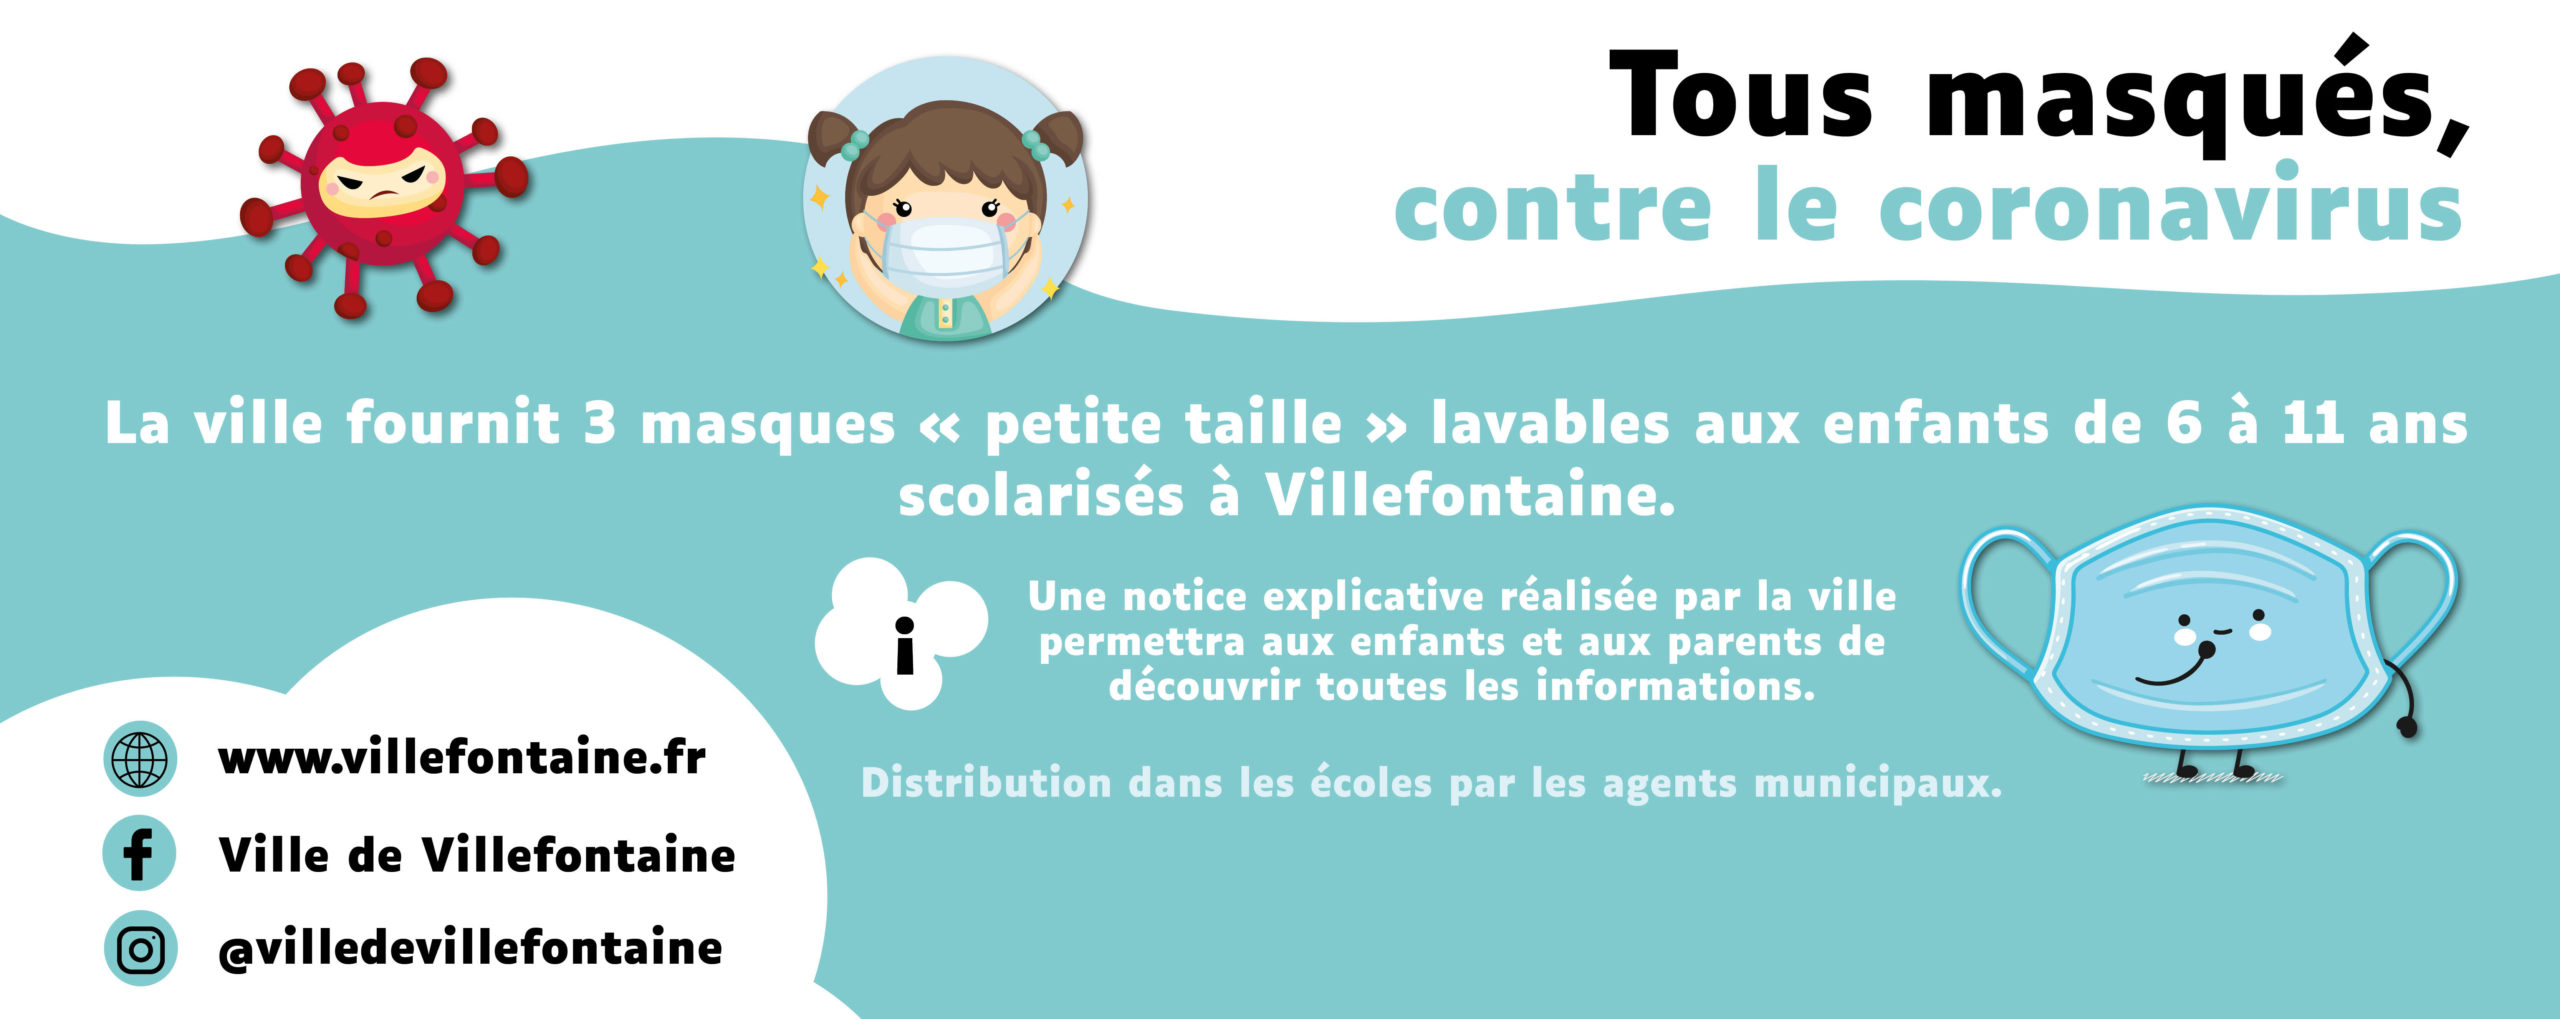 Focus - article site - masques enfants